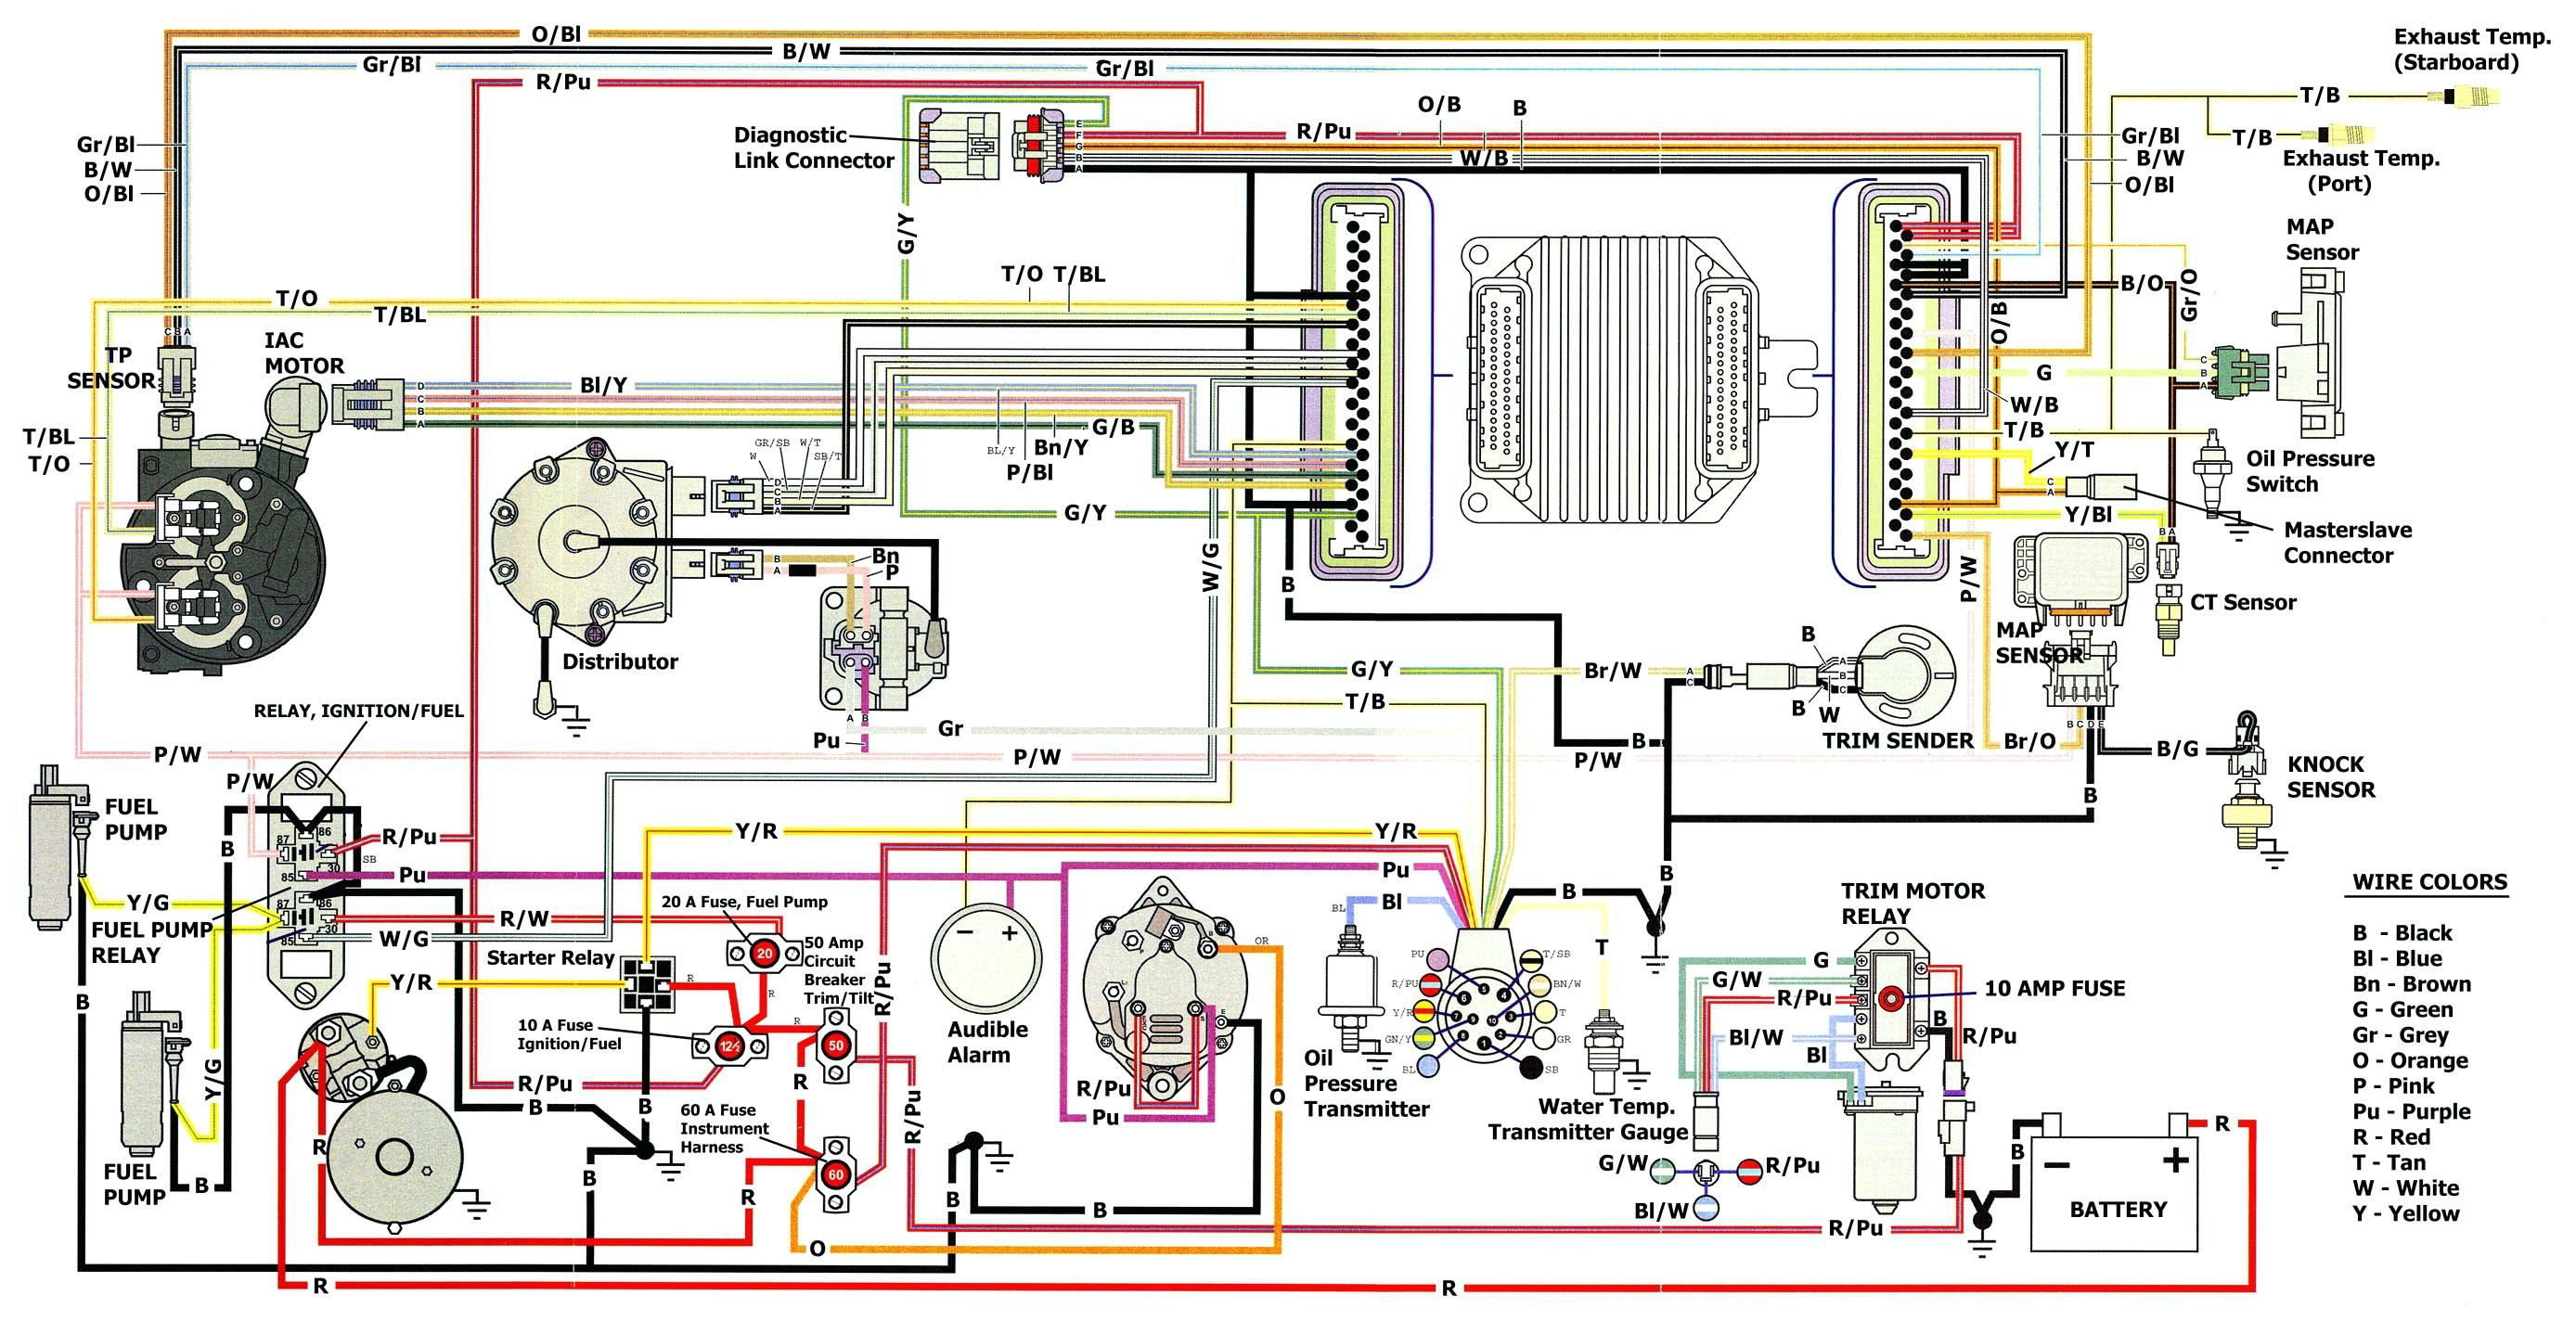 volvo v70 schematics wiring diagram preview Volvo 240 Engine